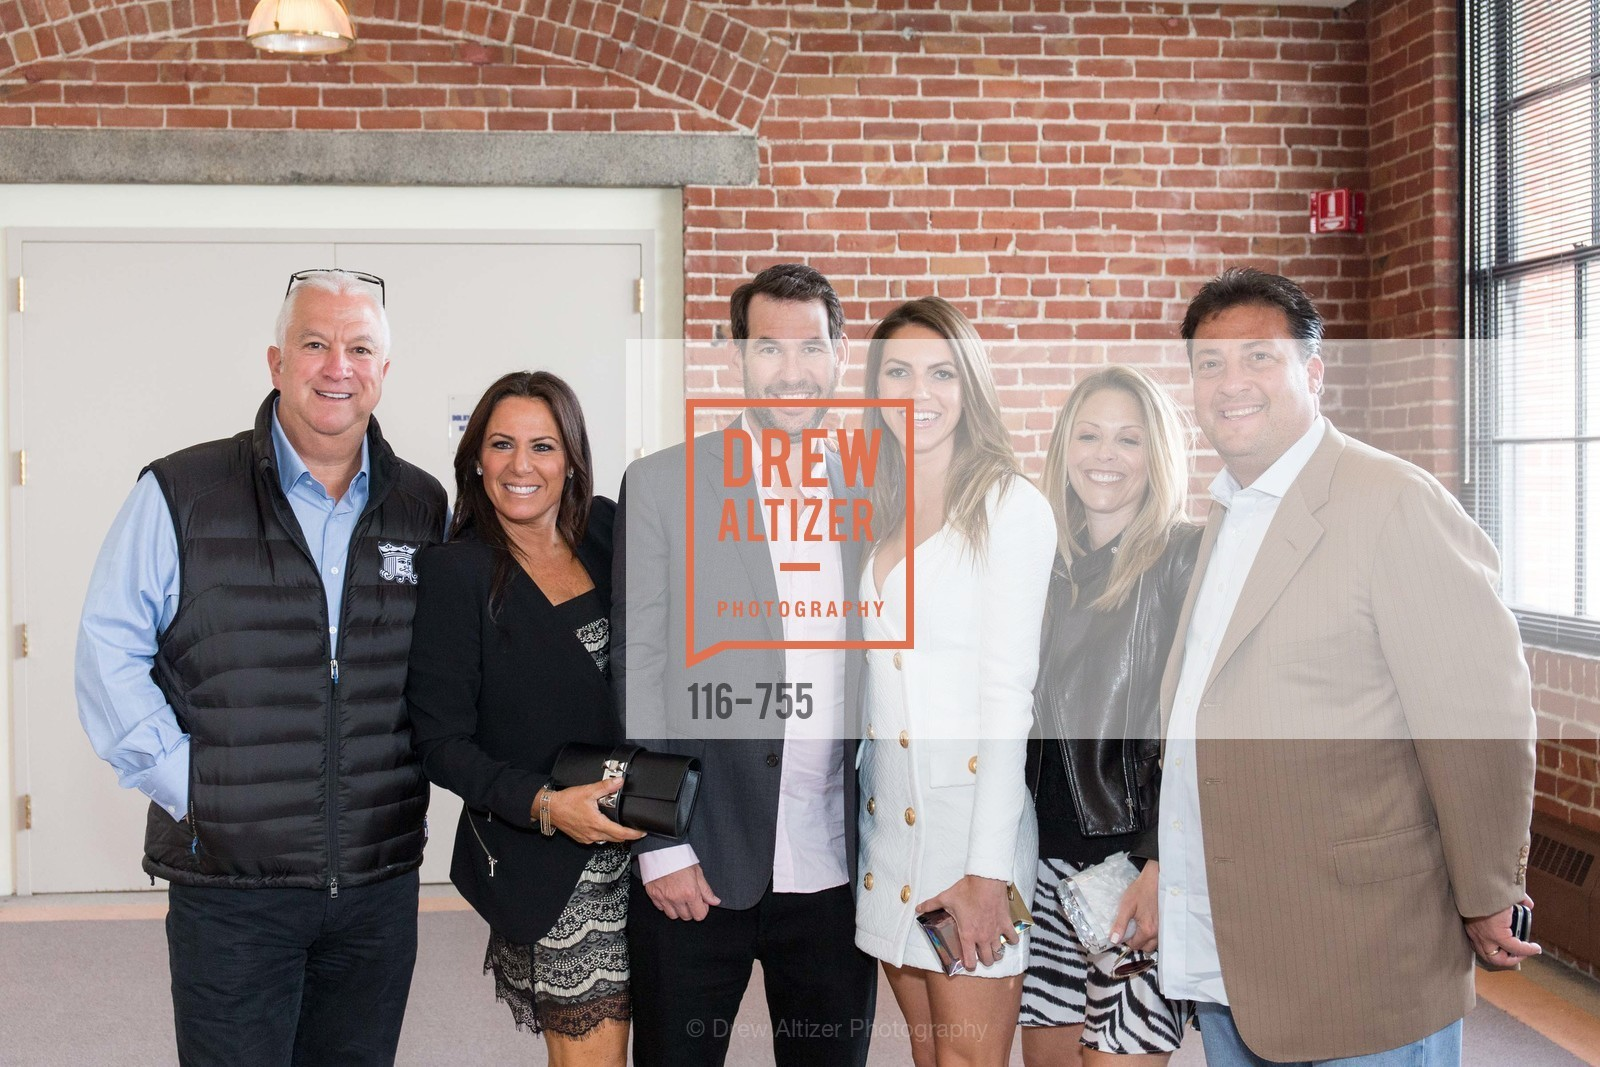 Peter Hochfelder, Stacy Hochfelder, Doug Ellin, Matty Deal, Shoshana Dichter, ENTOURAGE:  Private Event, US, May 31st, 2015,Drew Altizer, Drew Altizer Photography, full-service agency, private events, San Francisco photographer, photographer california